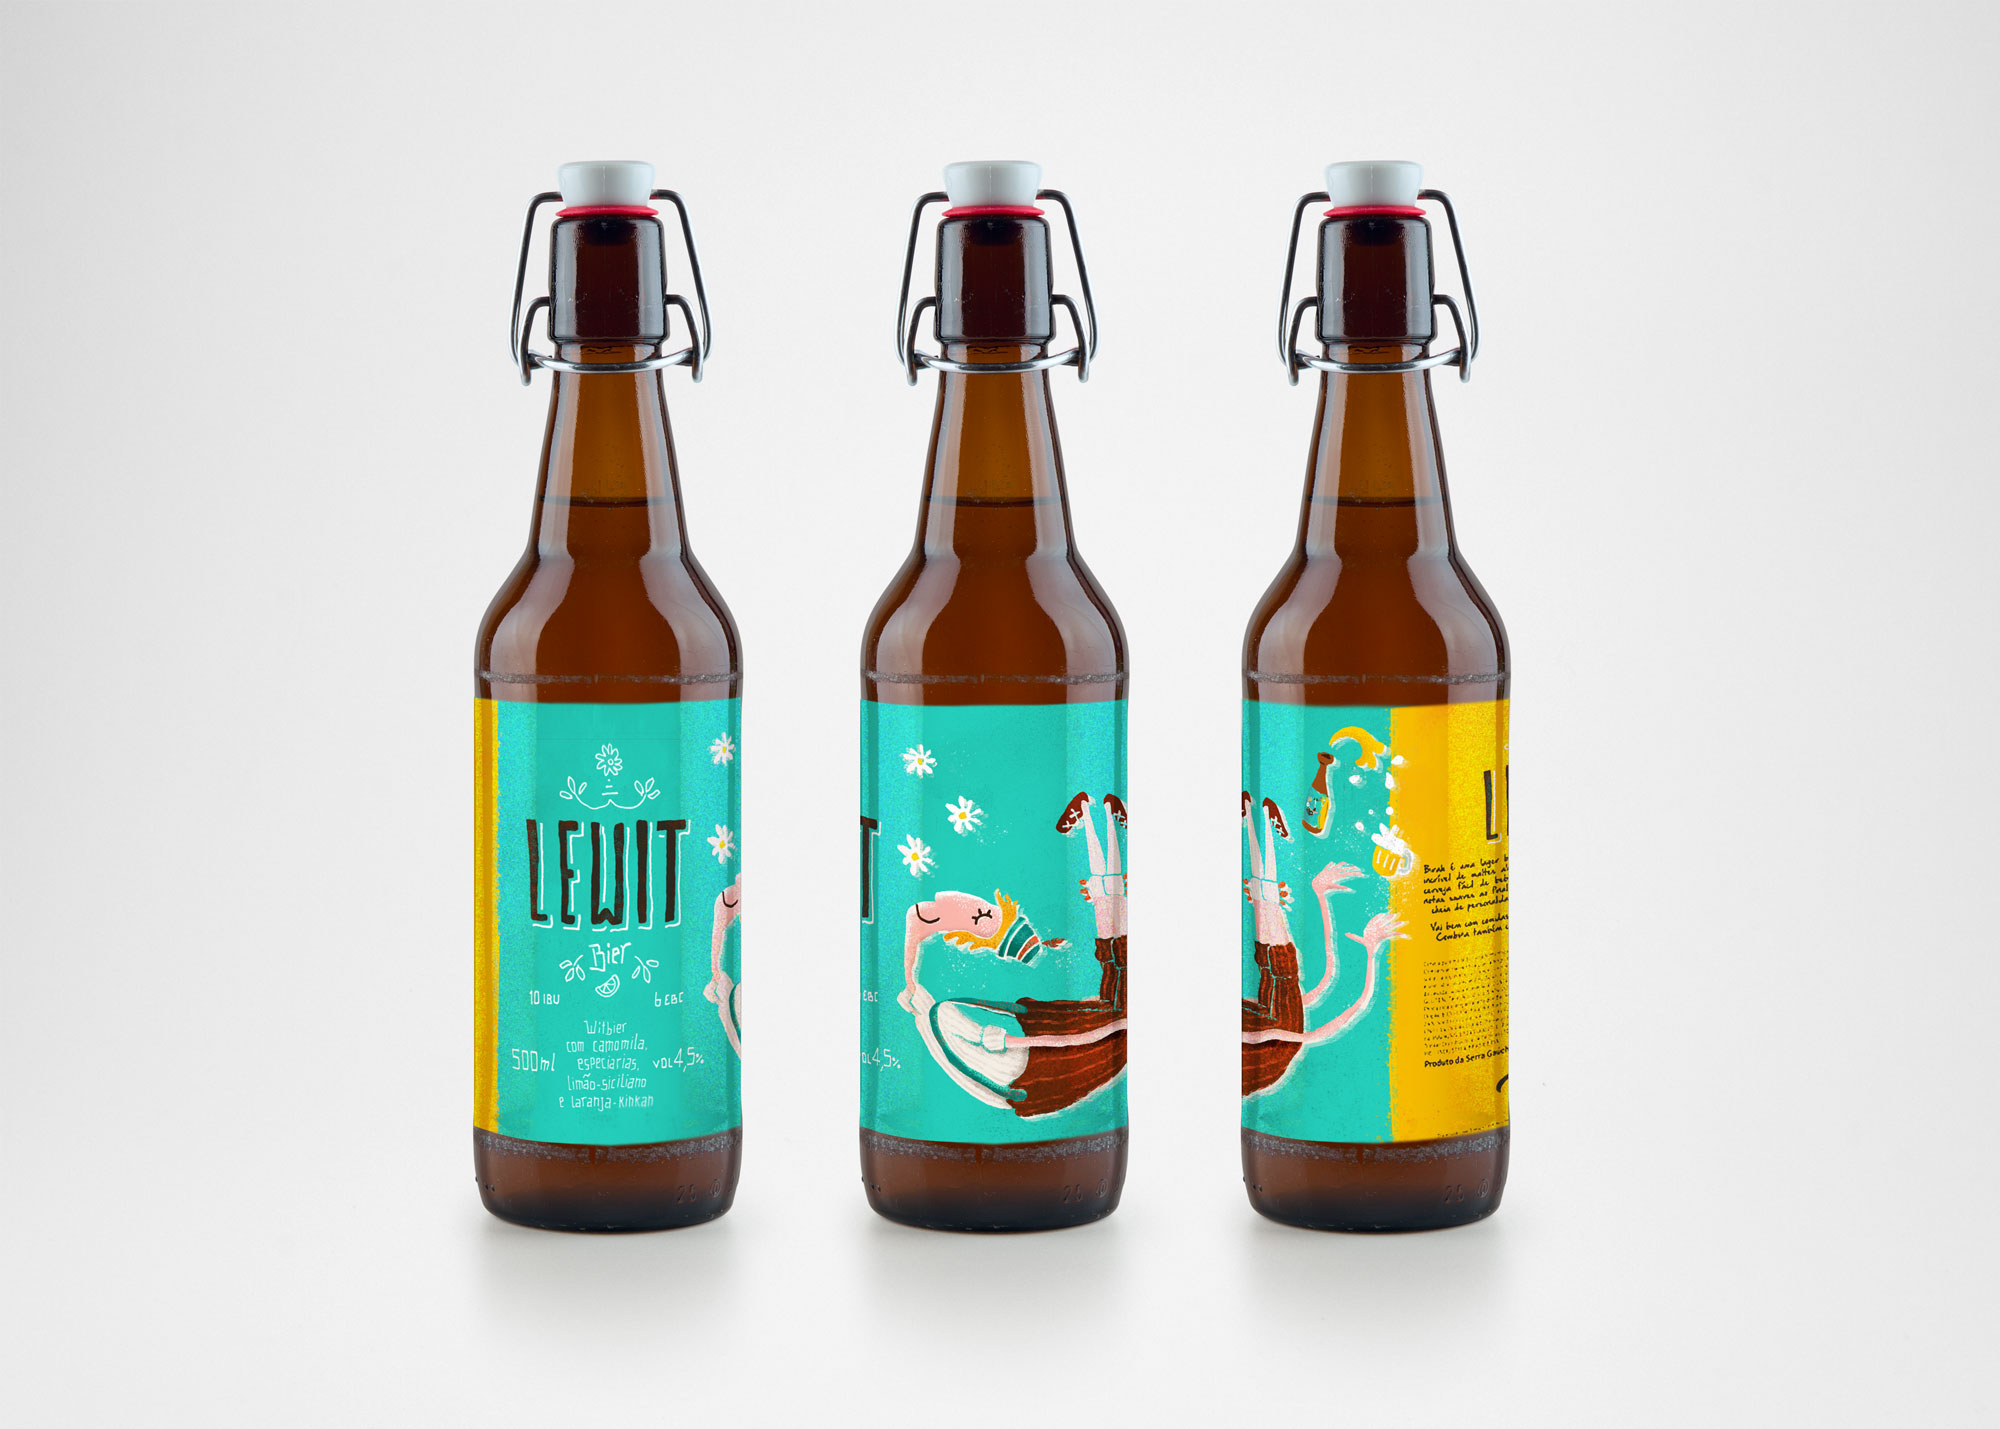 Artisan-Beer-Bottle-MockUp_LEWIT.jpg